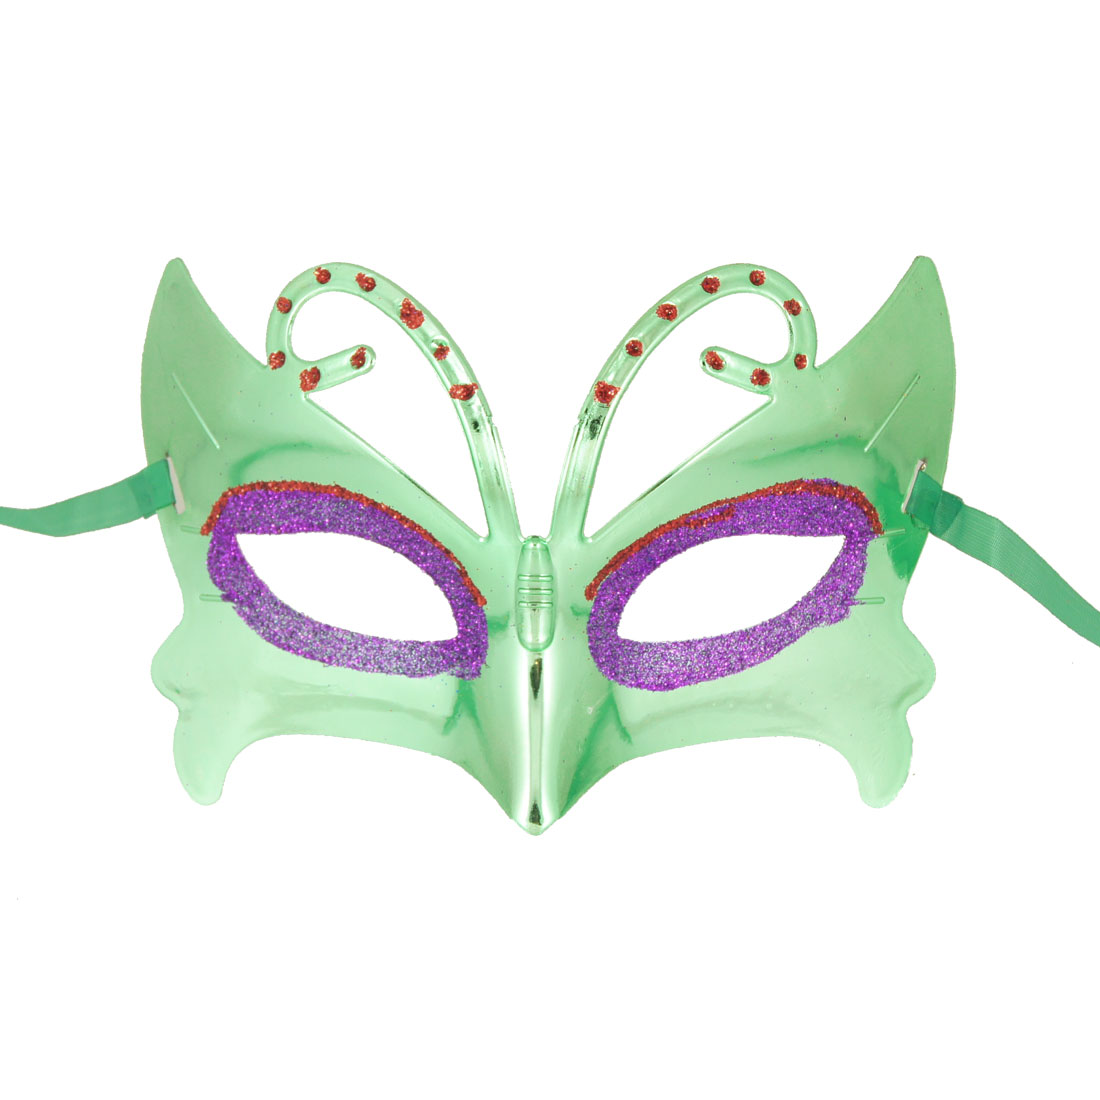 Purple Red Powder Eyes Green Plated Plastic Rhinestone Decor Half Face Mask